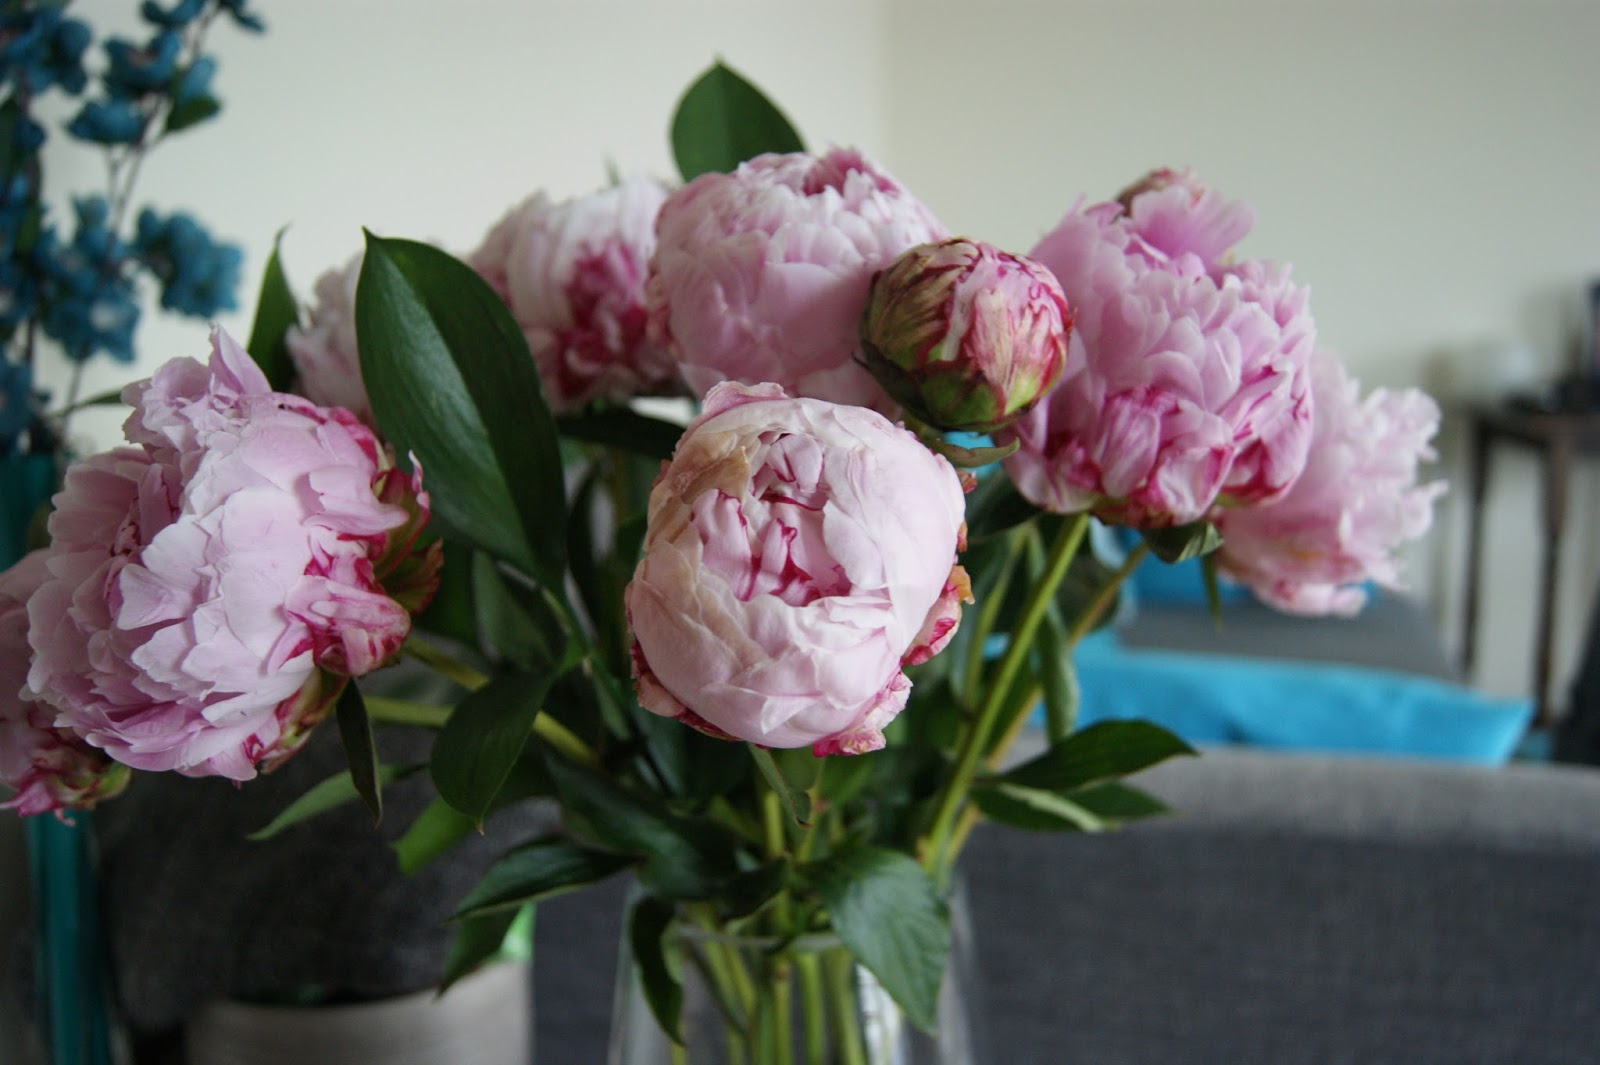 Pretty peonies from debenhams flowers frills n spills i mean how could you not love them they are just so unashamedly vibrant reviewsmspy